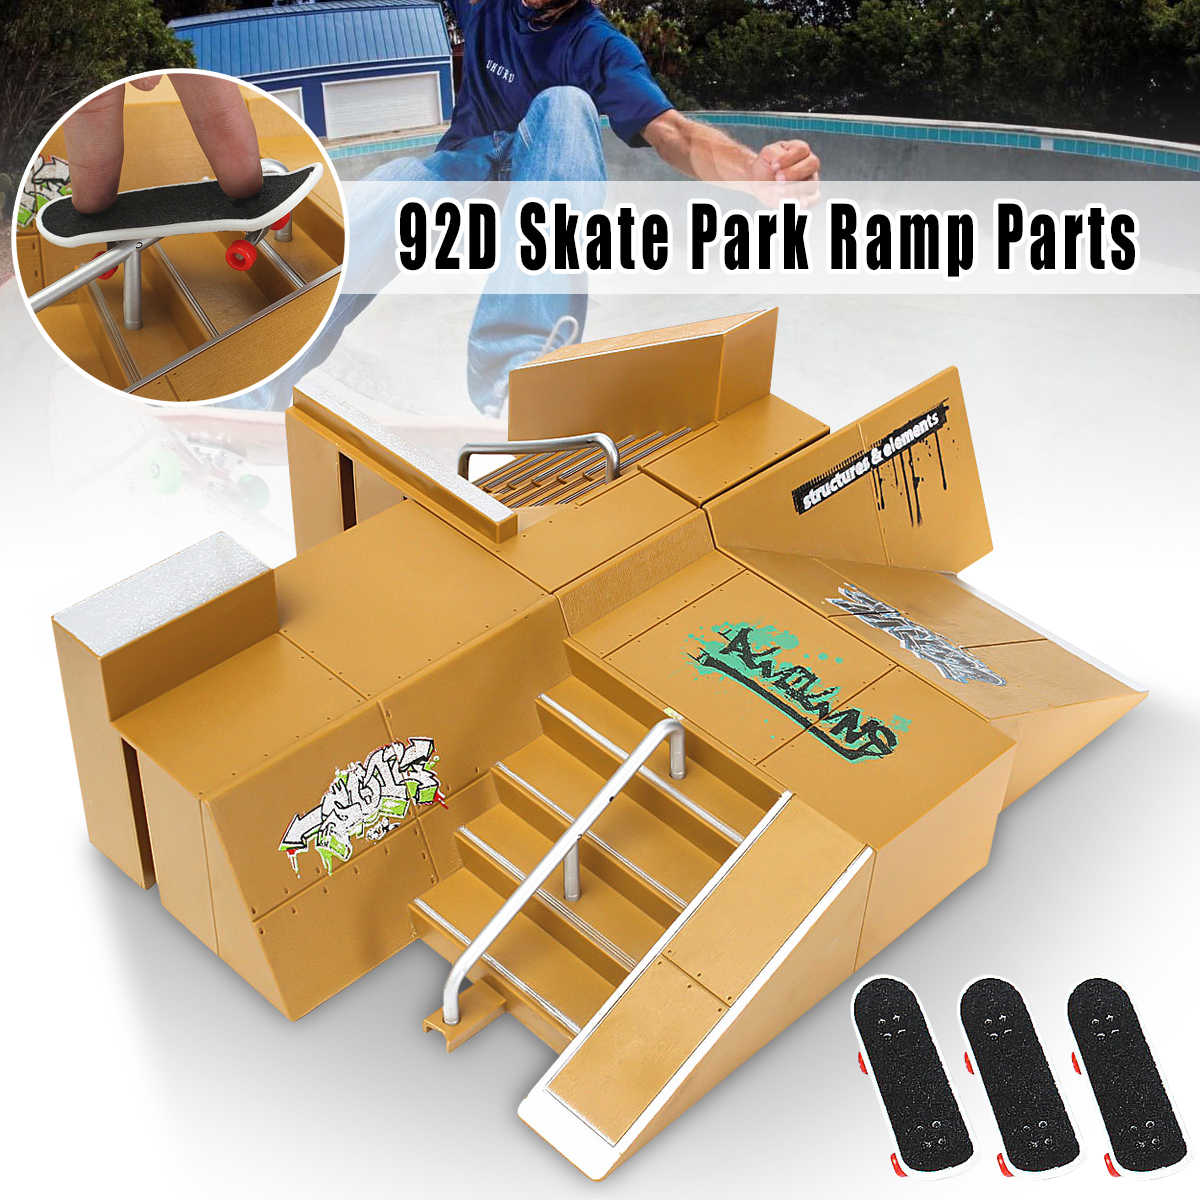 Detail Feedback Questions About 92d Skate Park Kit Ramp Parts For Skateboard Diagram Tech Deck Fingerboard Excellent Gift Extreme Sports Enthusiasts Sport Training On